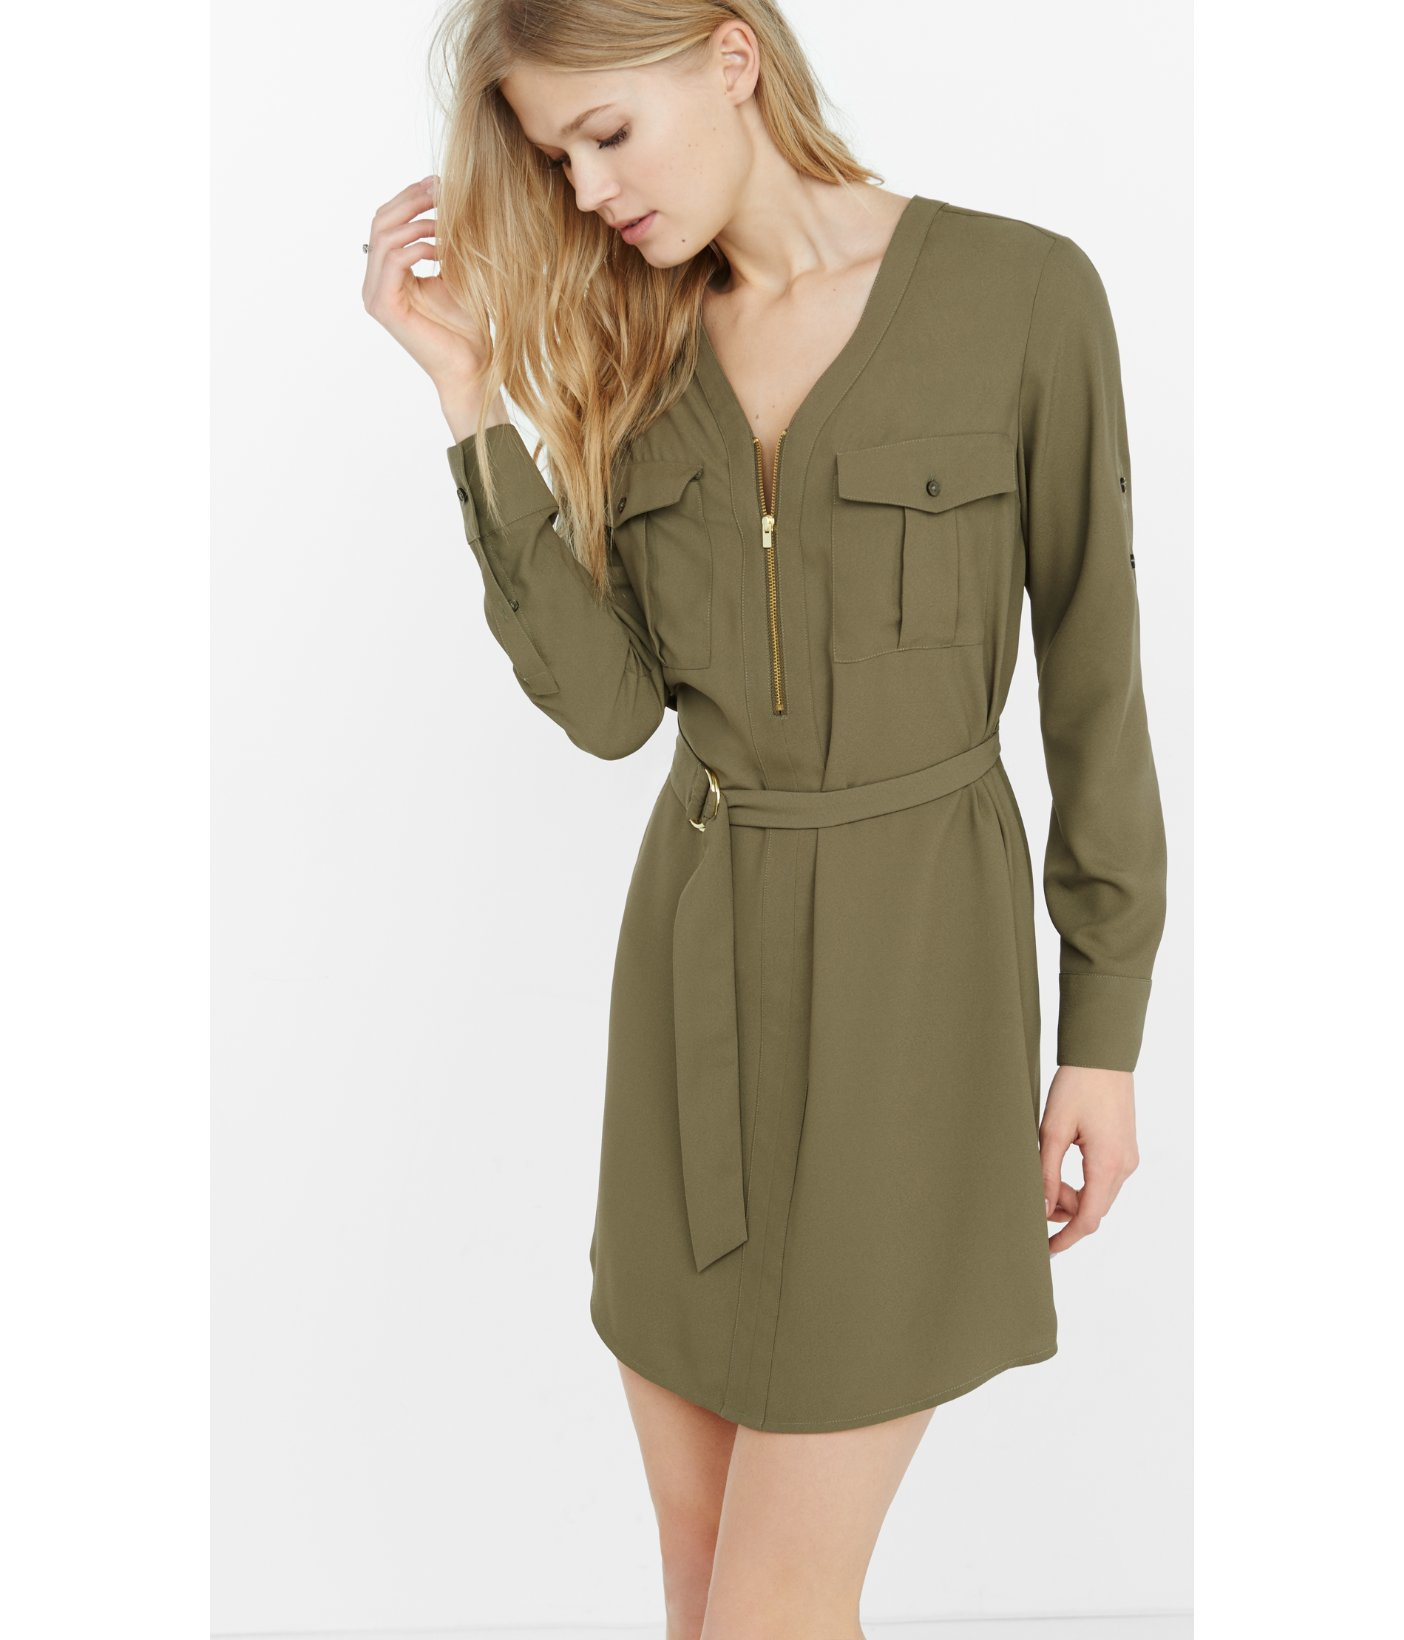 Olive Green Shirt Dress T Shirt Design Database